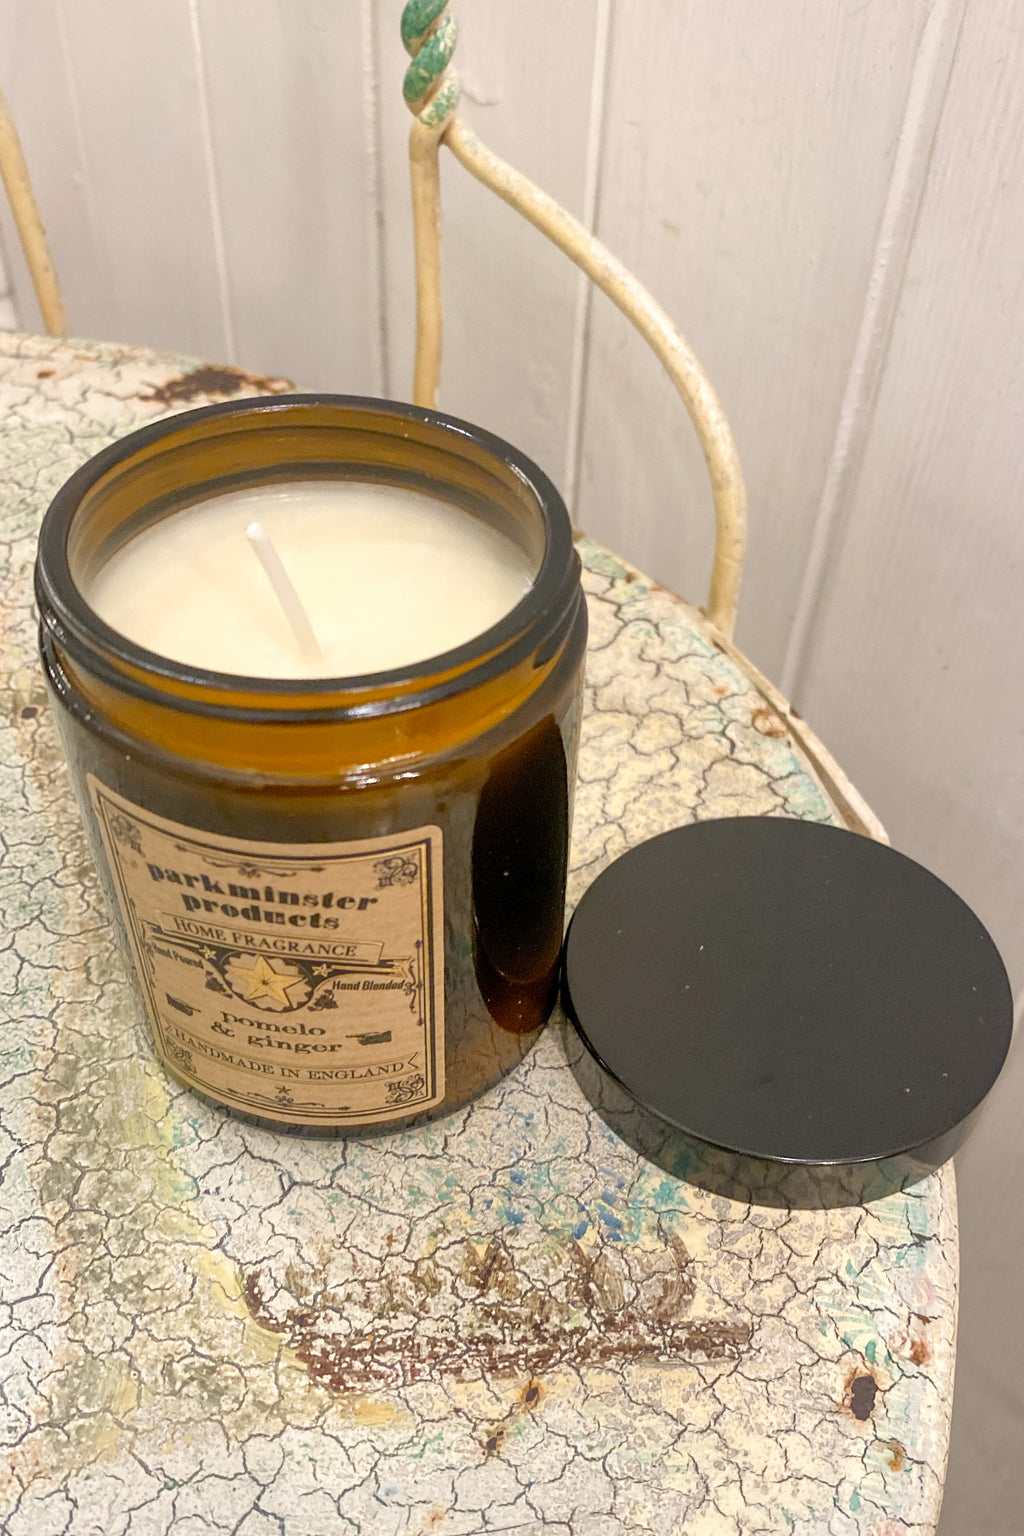 Parkminster Pomelo & Ginger Apothecary Jar Candle - The Mercantile London